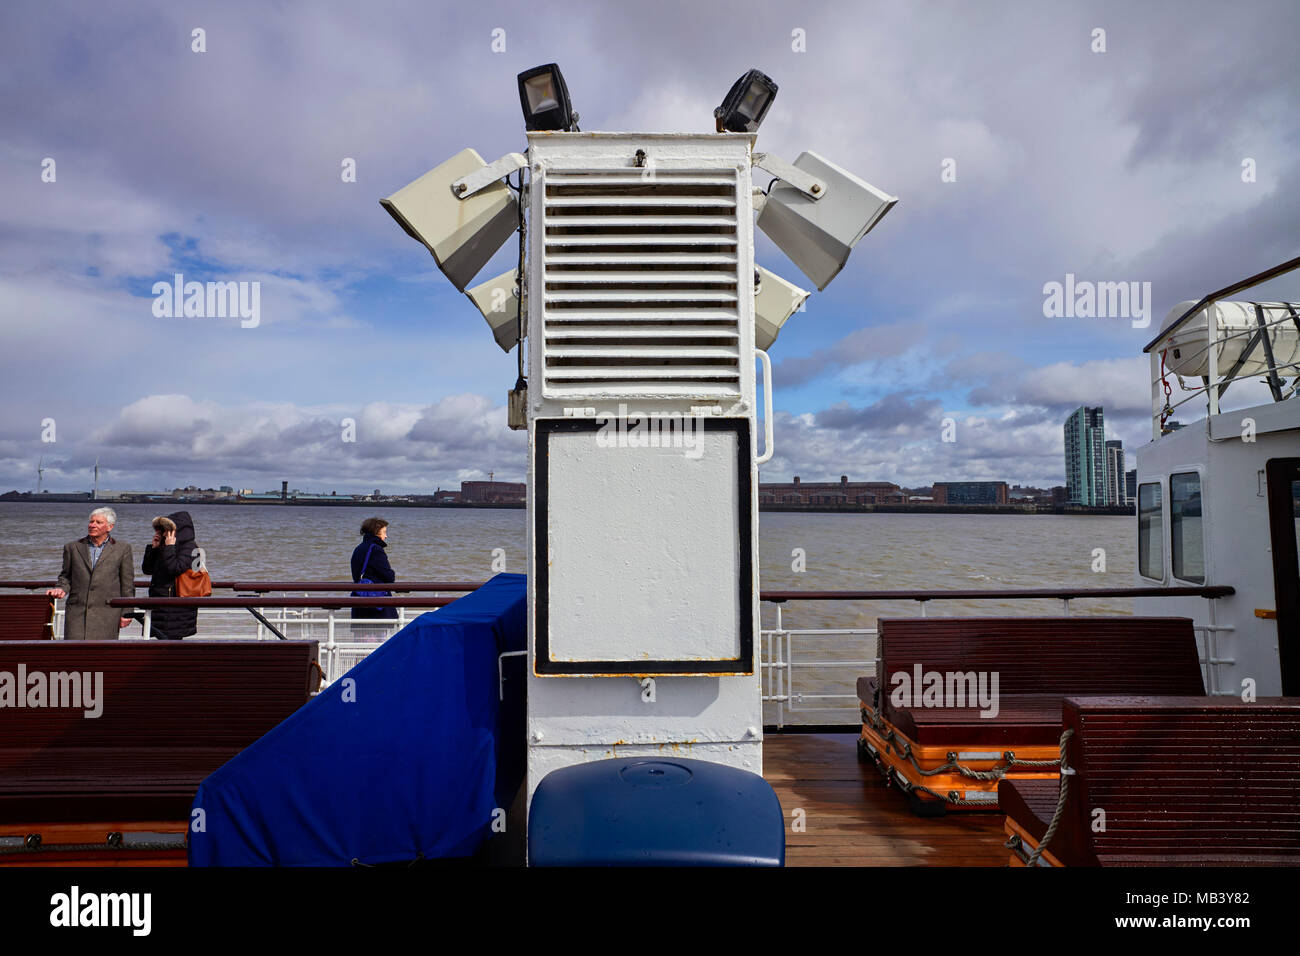 Ventilator at the aft deck on the Royal Iris Mersey Ferry - Stock Image